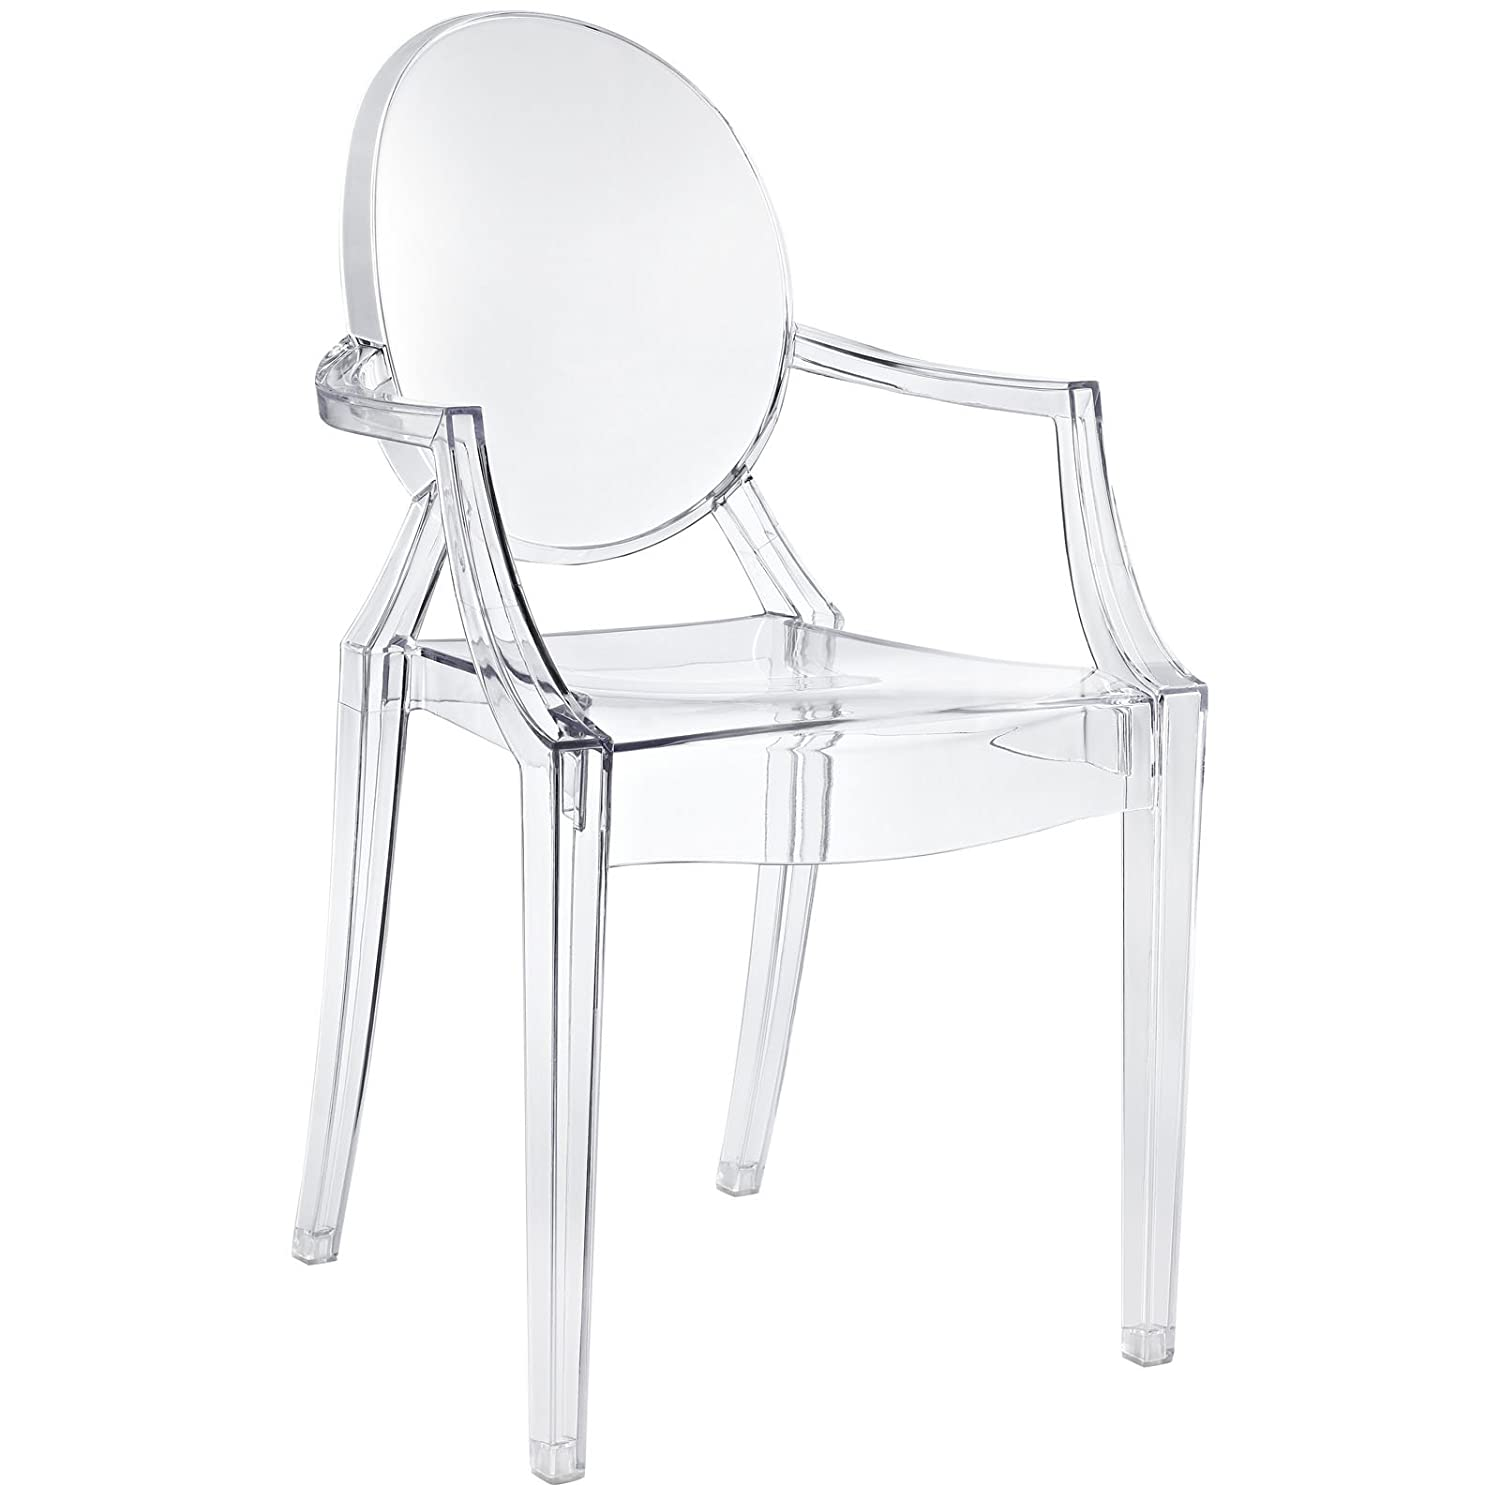 Acrylic clear chairs - Acrylic Clear Chairs